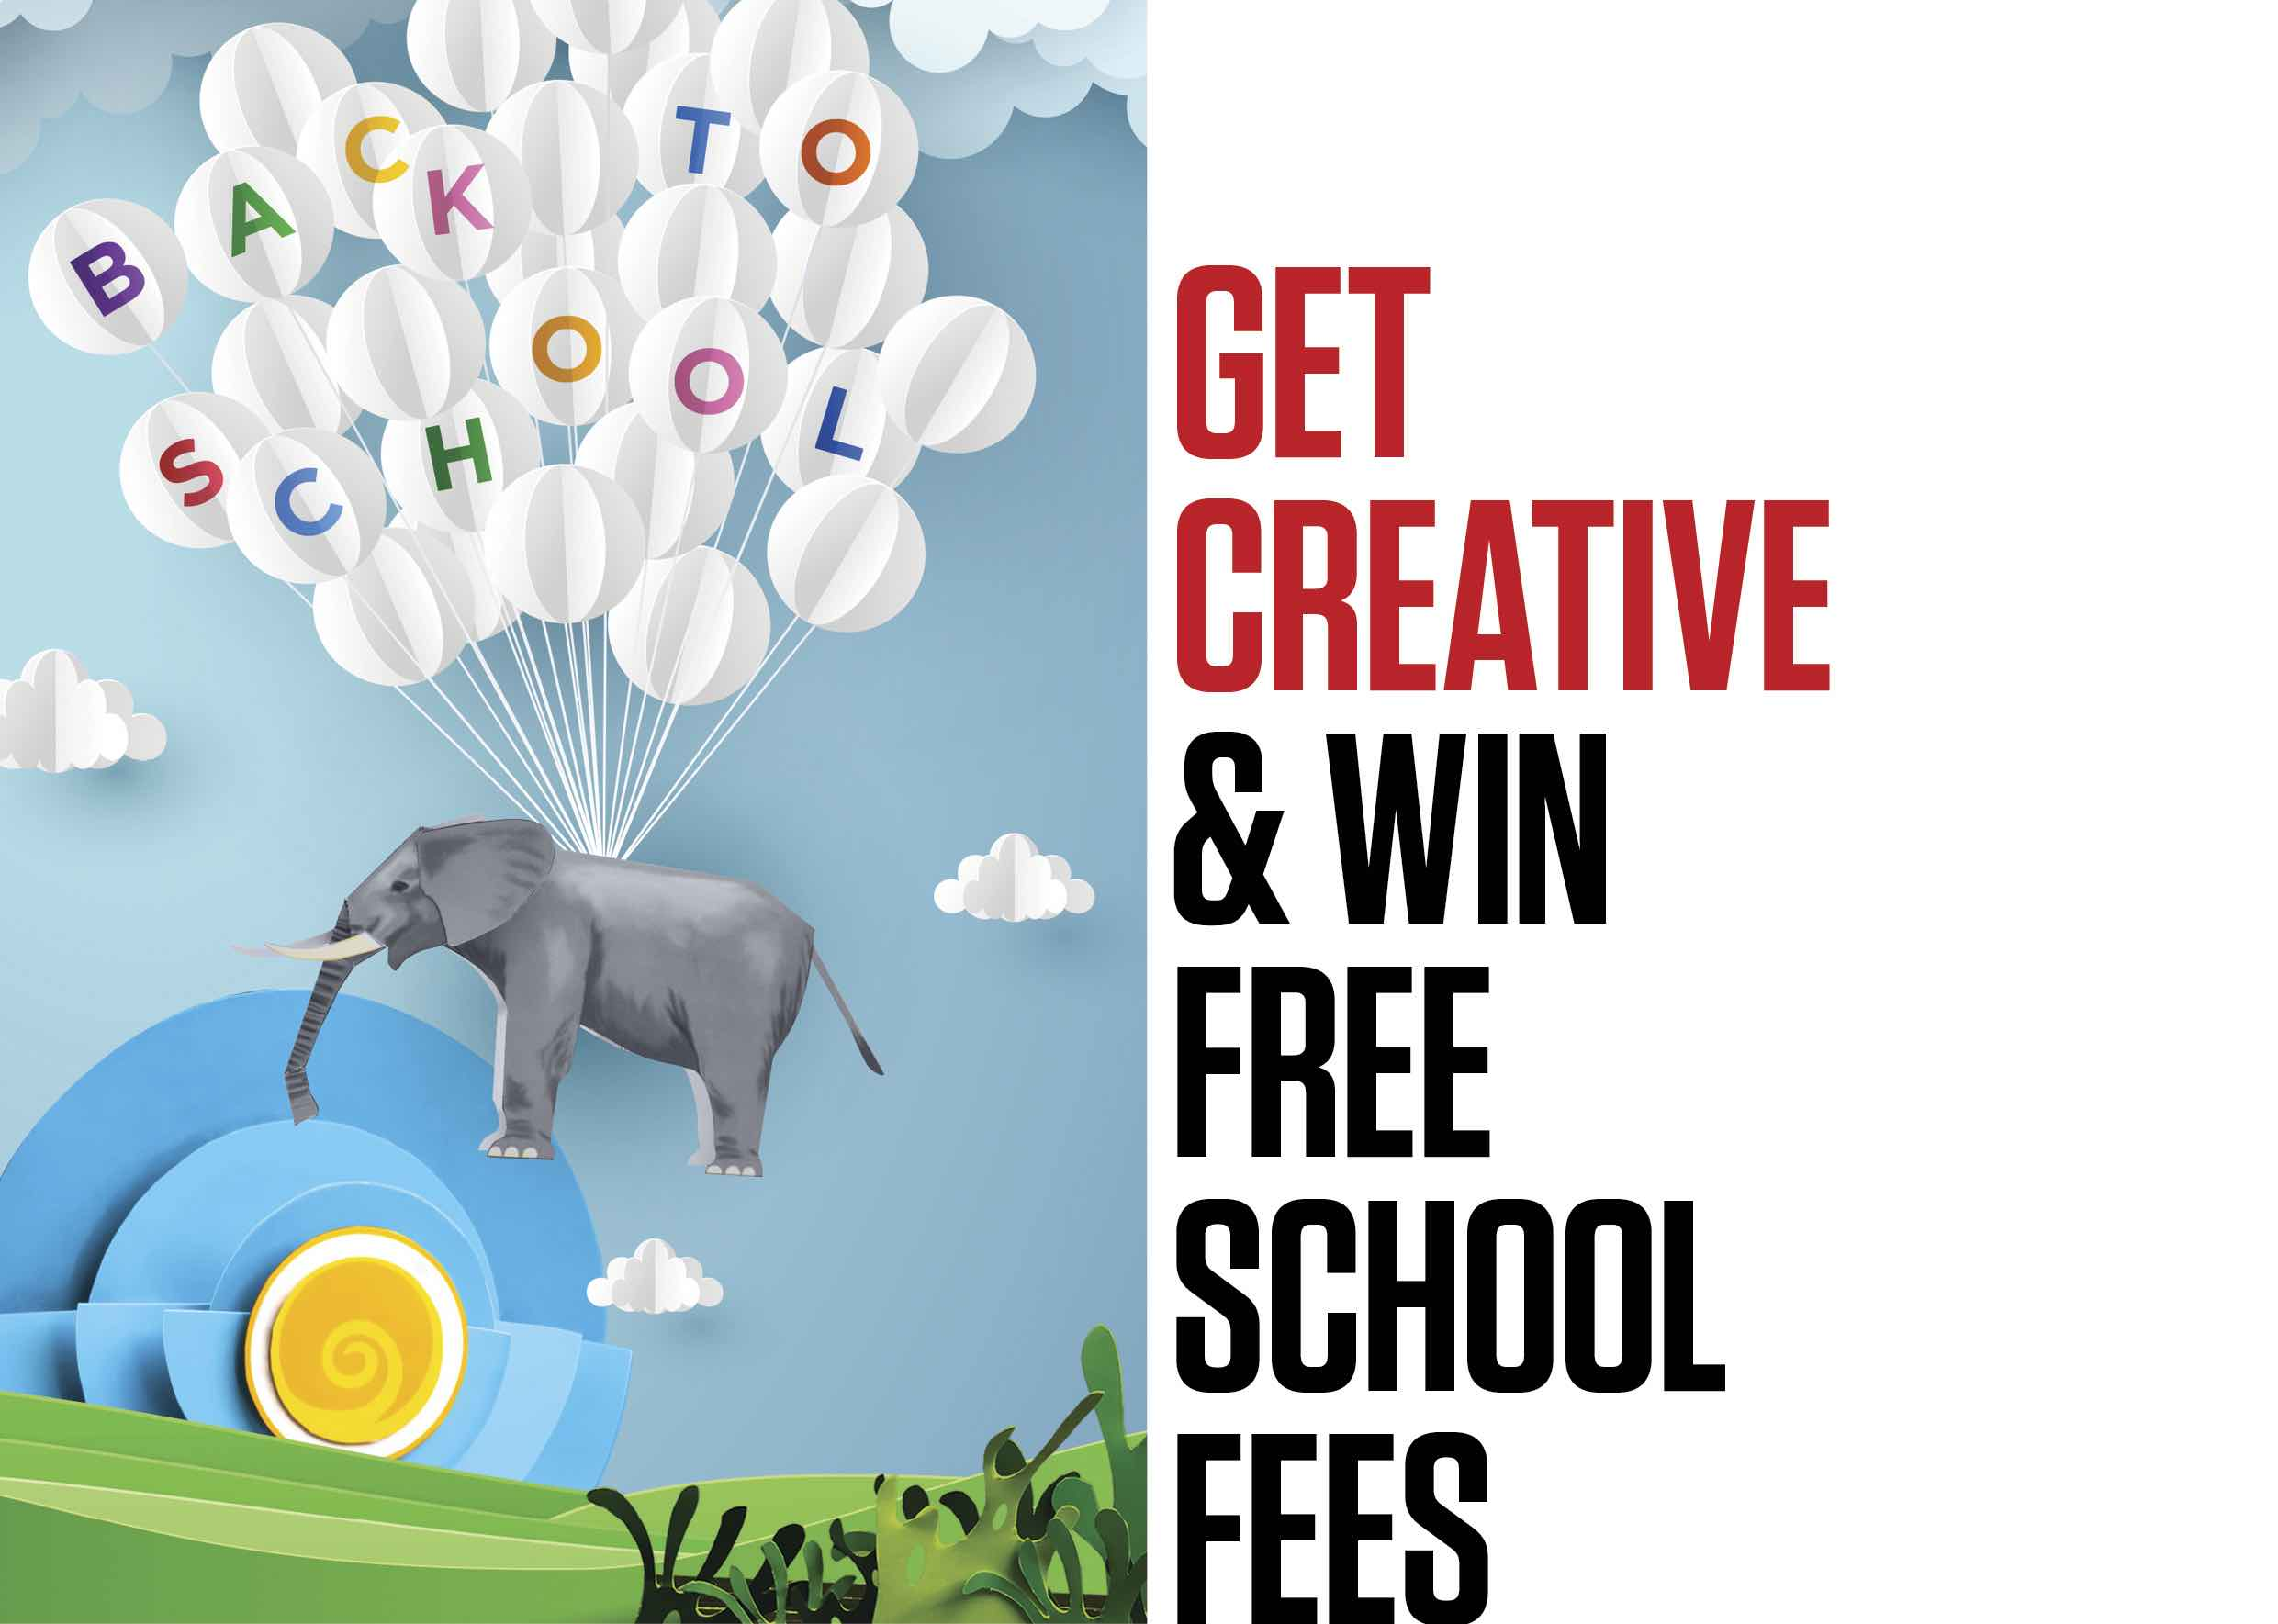 Get Creative & Win Free School Fees